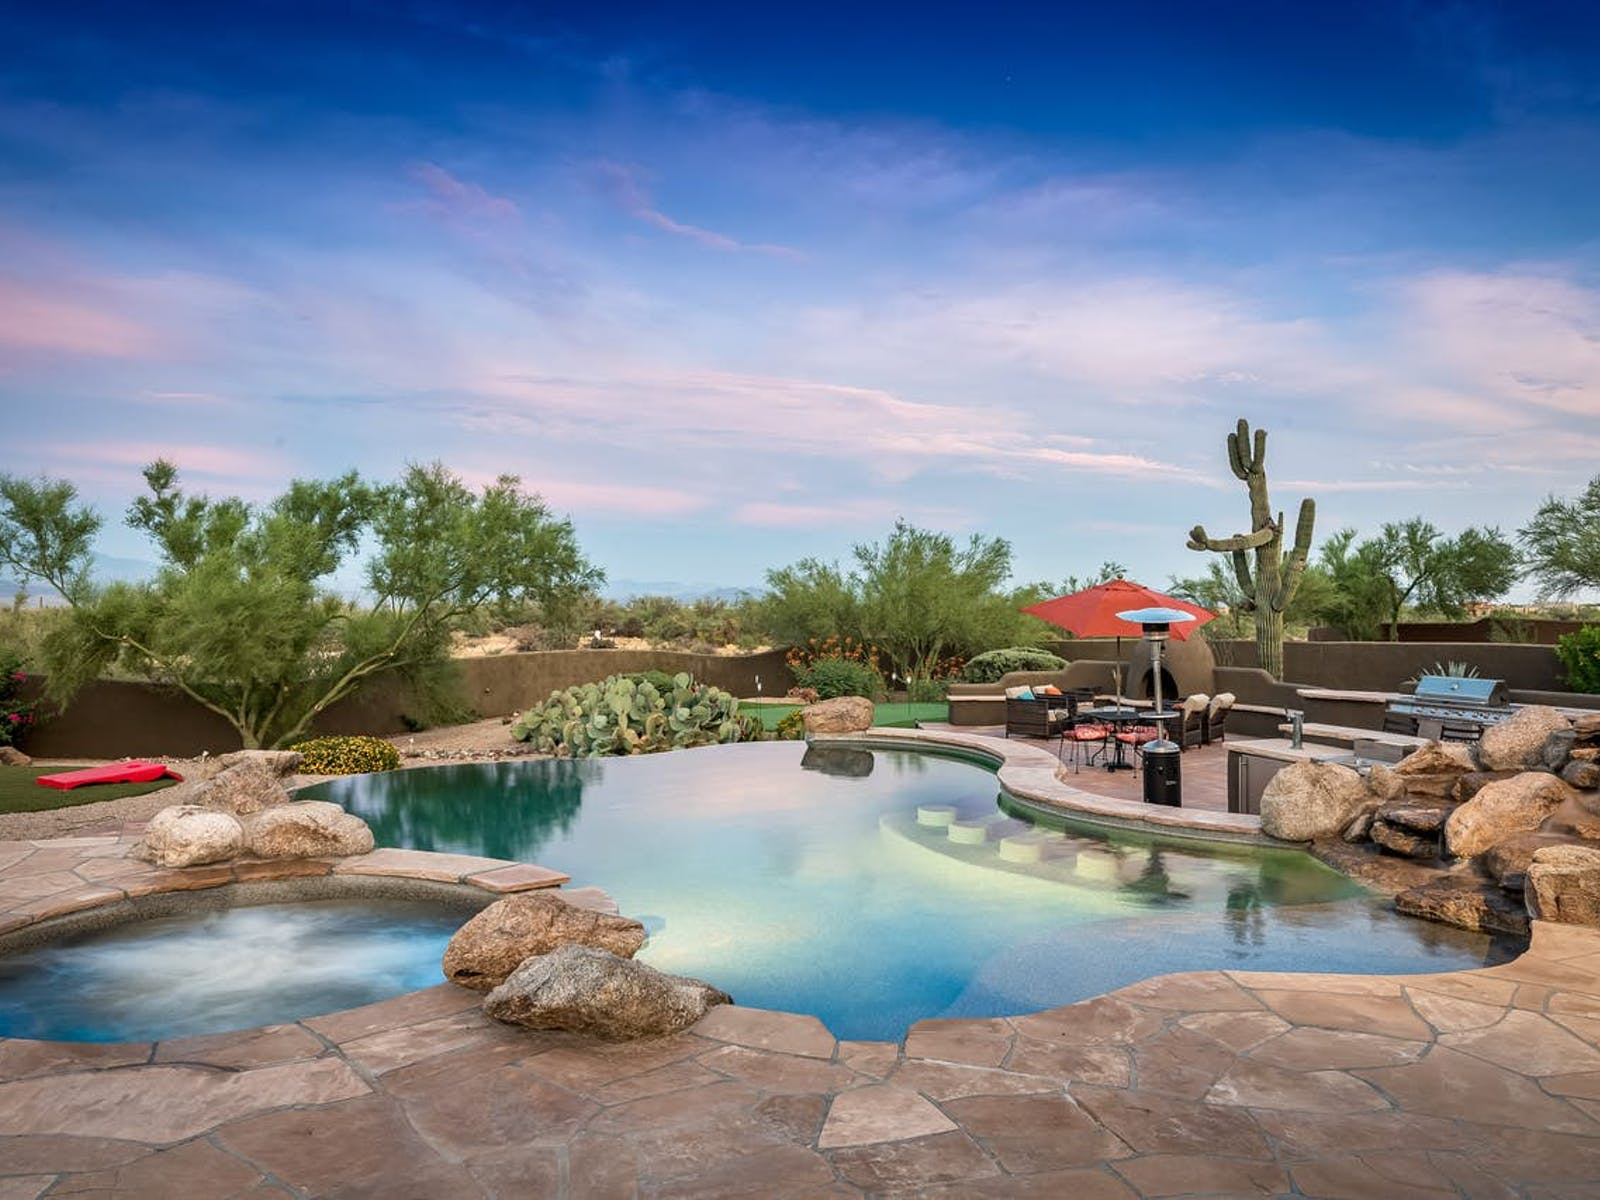 desert oasis vacation rental with beautifully landscaped infinity pool